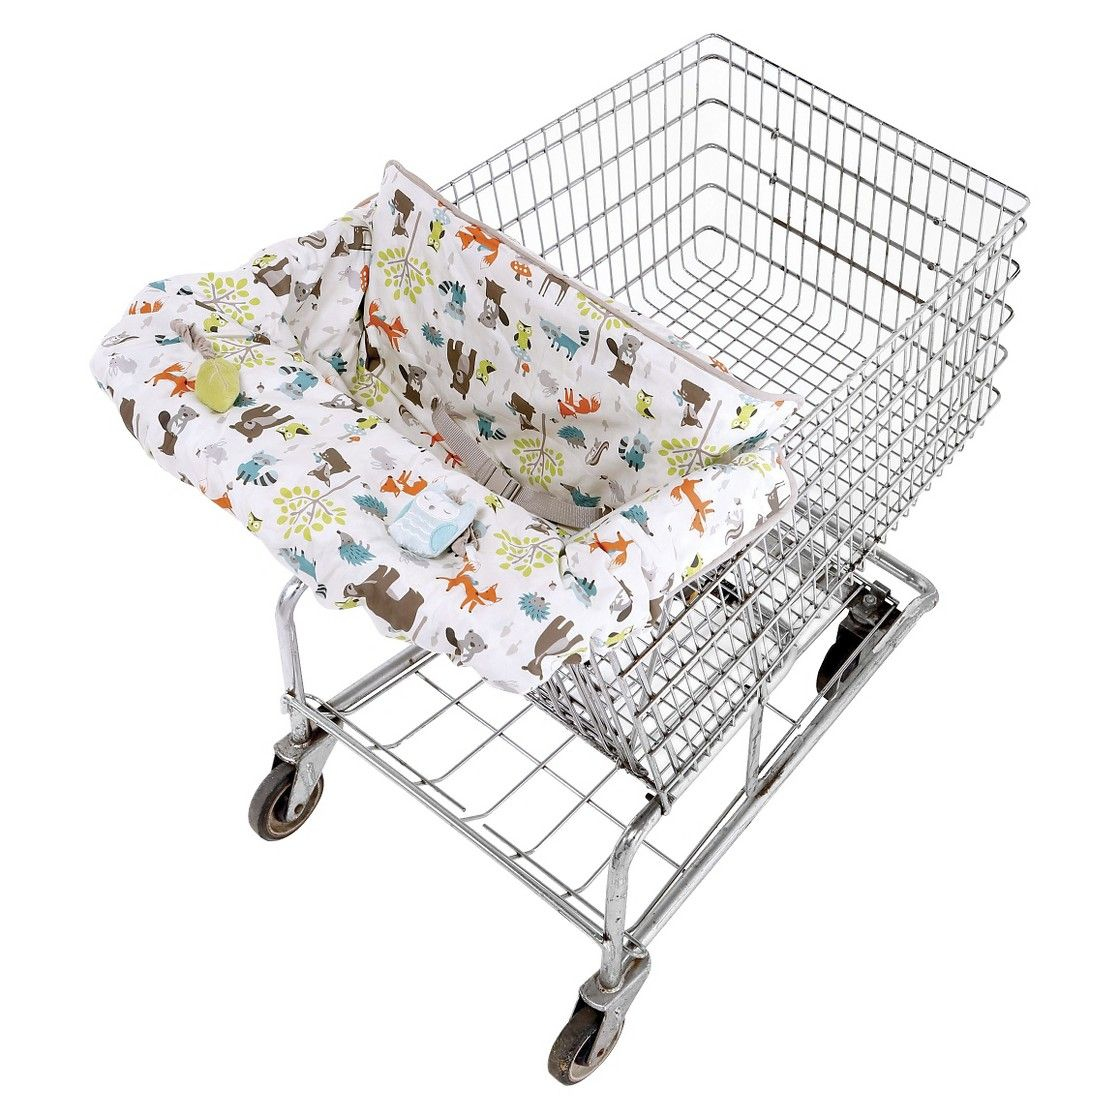 Terrific Eddie Bauer 2 In 1 Comfy Cover Reversible Shopping Cart Cjindustries Chair Design For Home Cjindustriesco